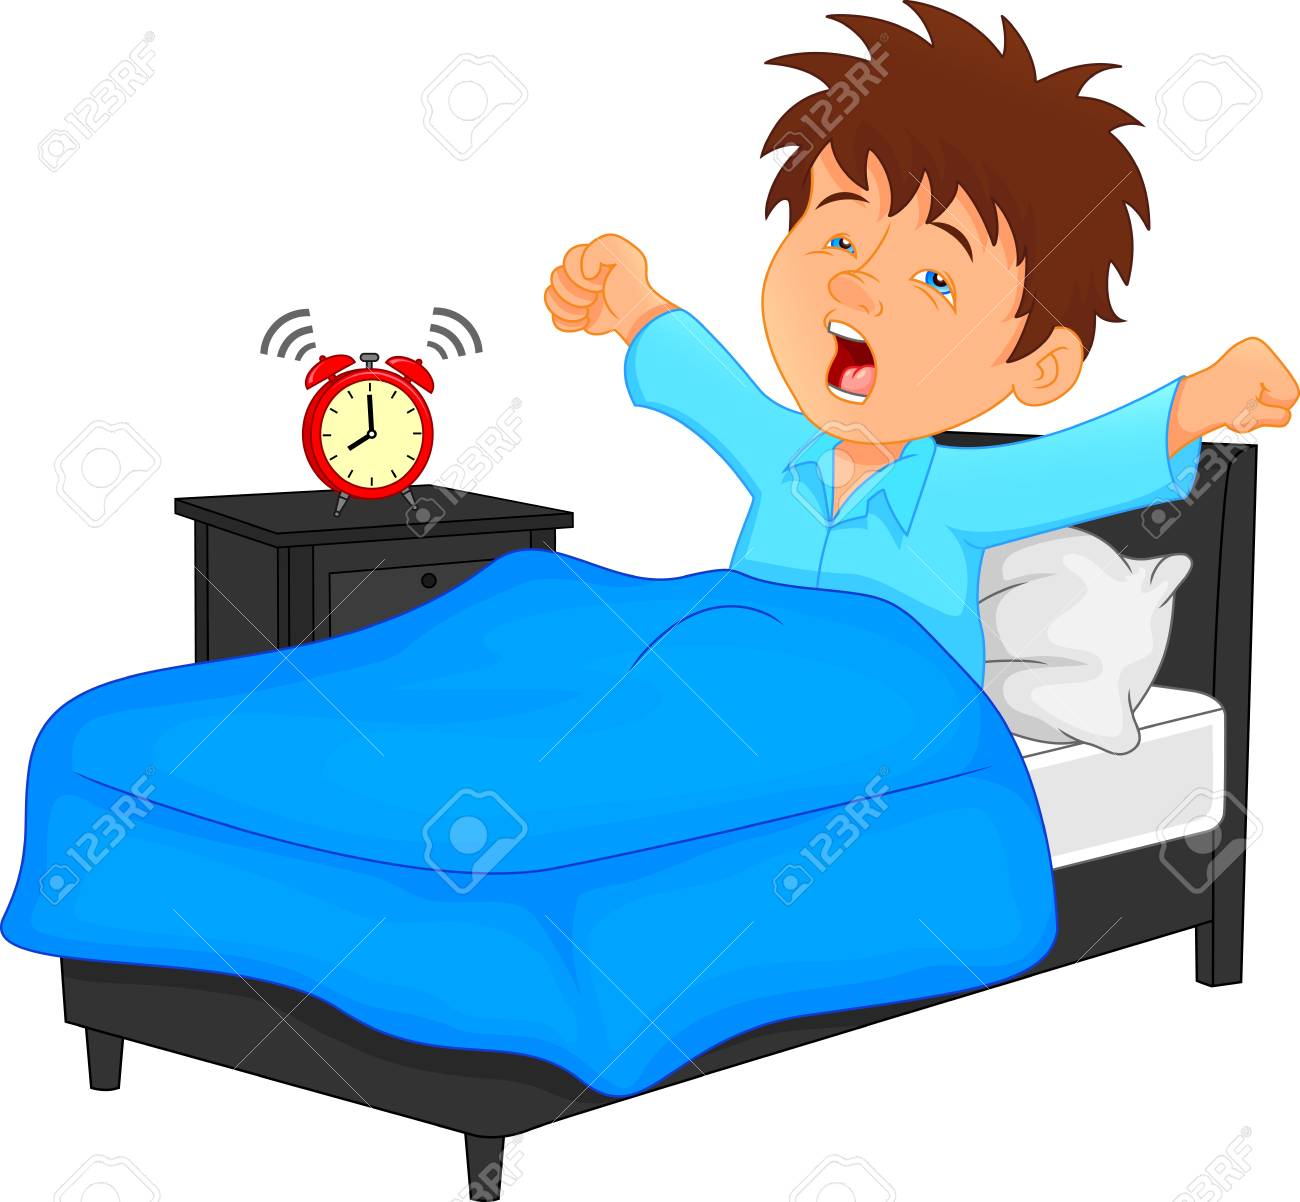 little boy wake up in the morning royalty free cliparts vectors rh 123rf com wake up clipart images wake up call clipart